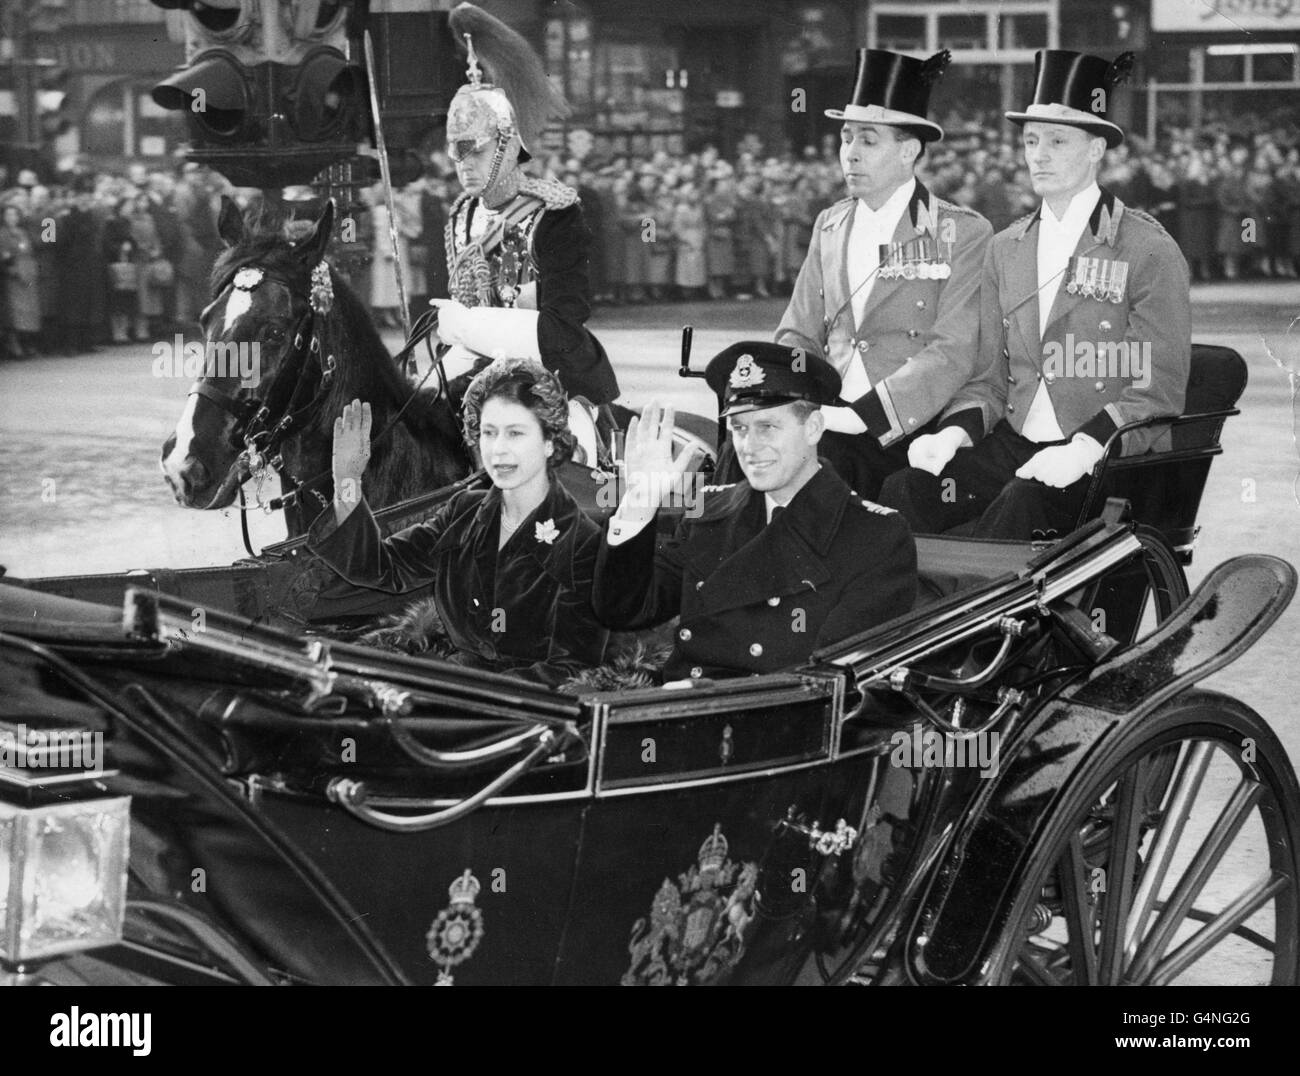 Royalty - Princess Elizabeth and the Duke of Edinburgh - Guildhall, London - Stock Image